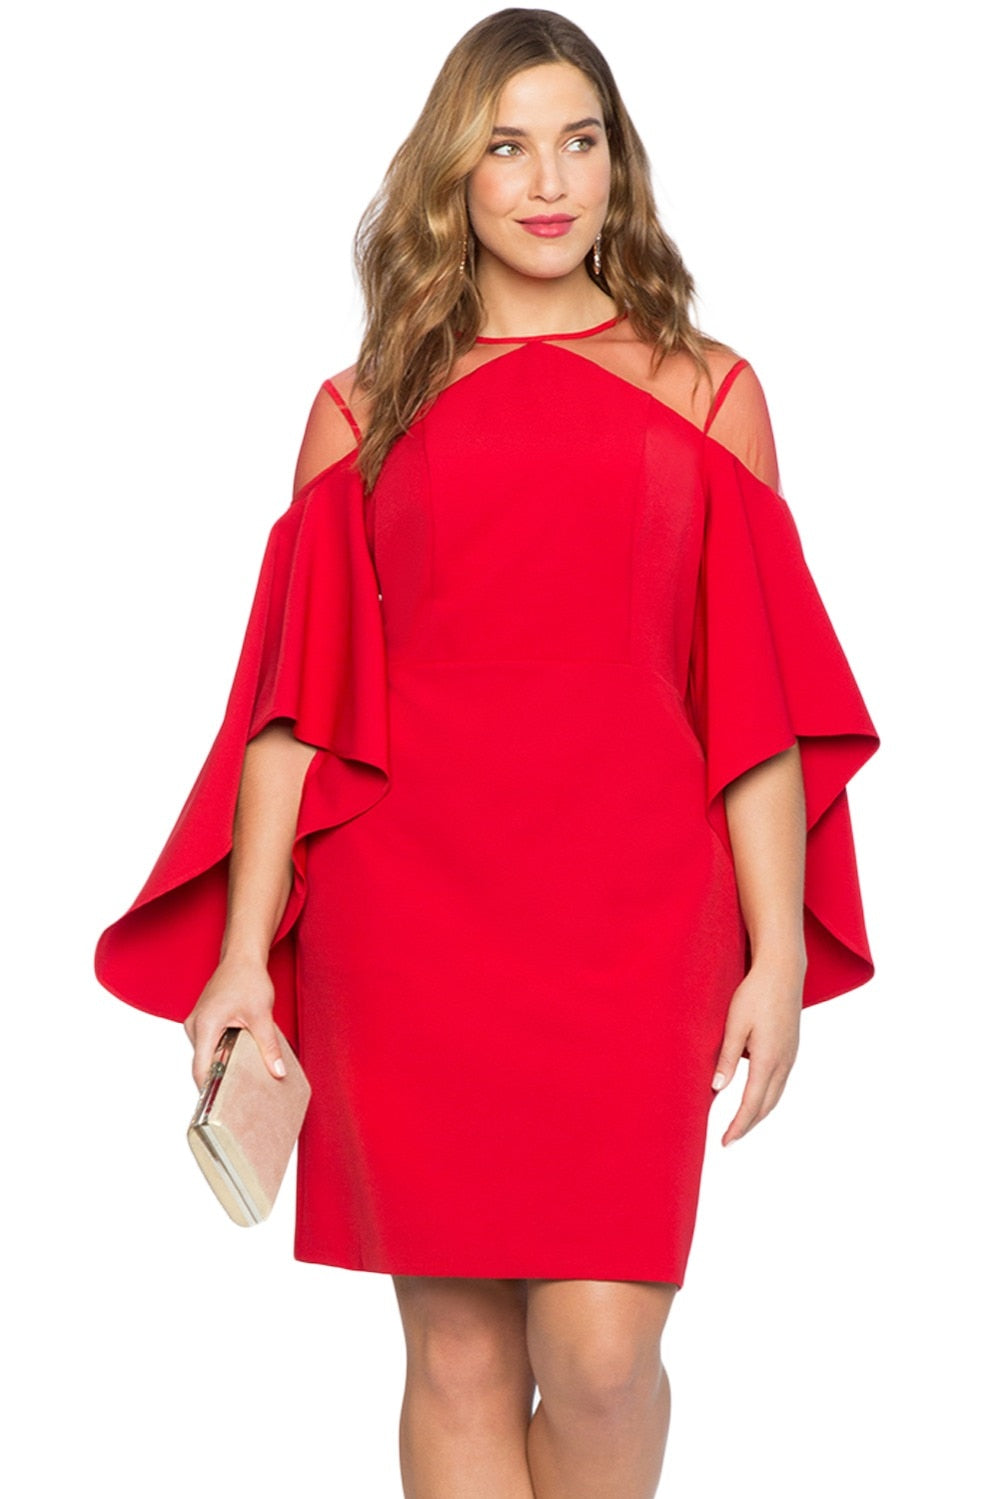 Cut Out Shoulder Detail Elegant Party Dress Woven Trends